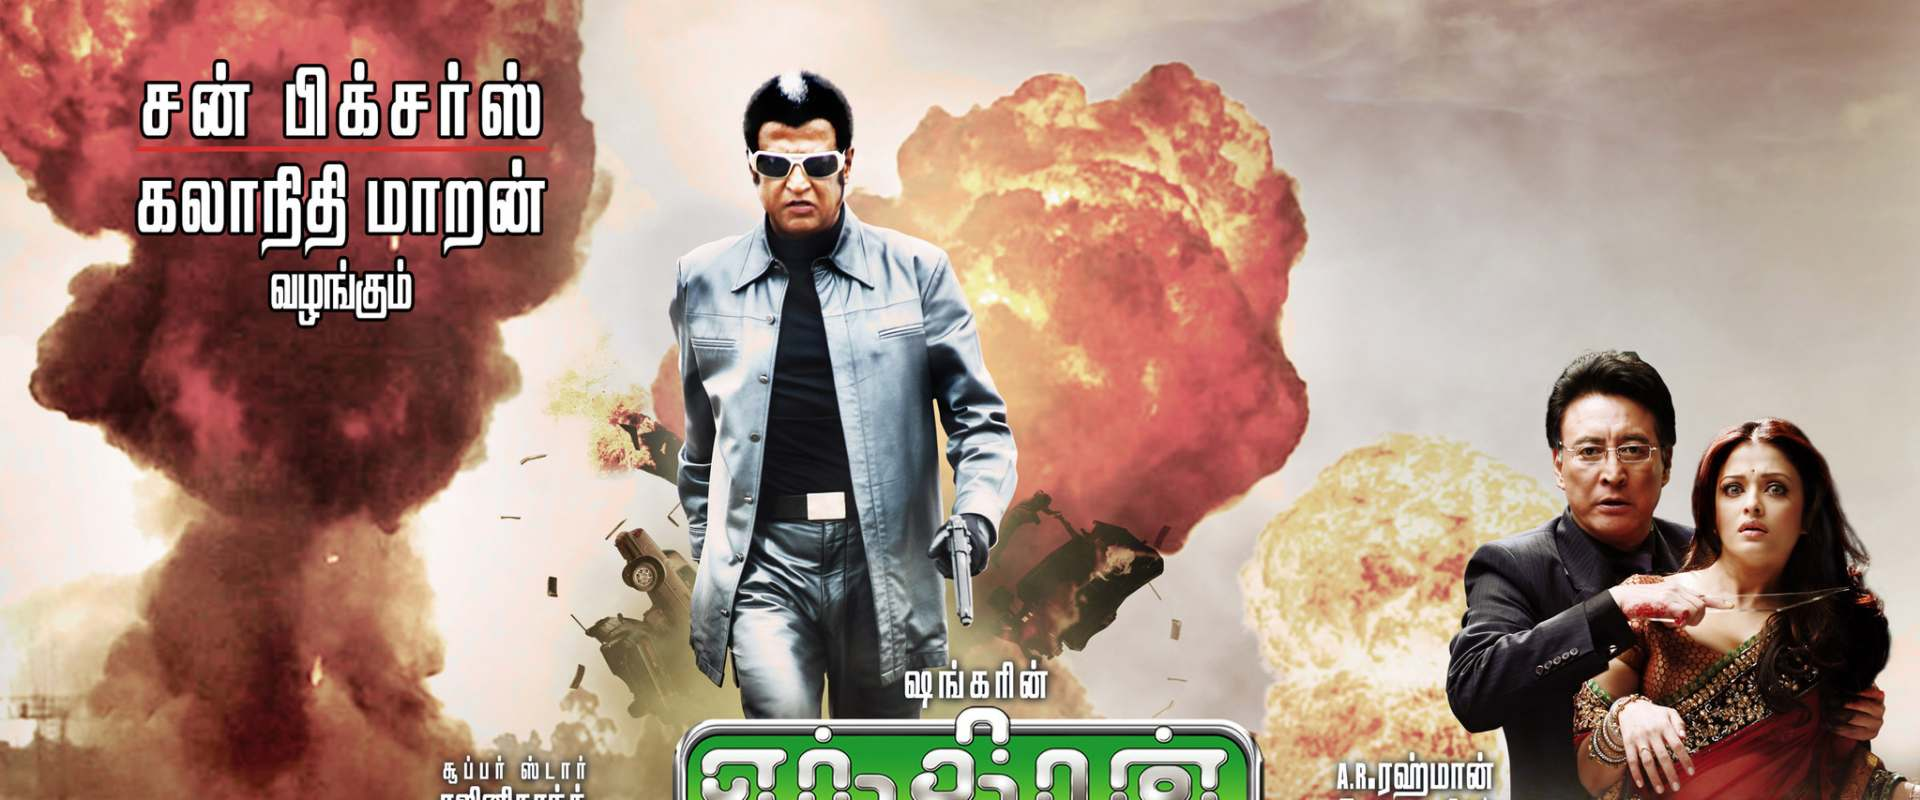 Enthiran background 1